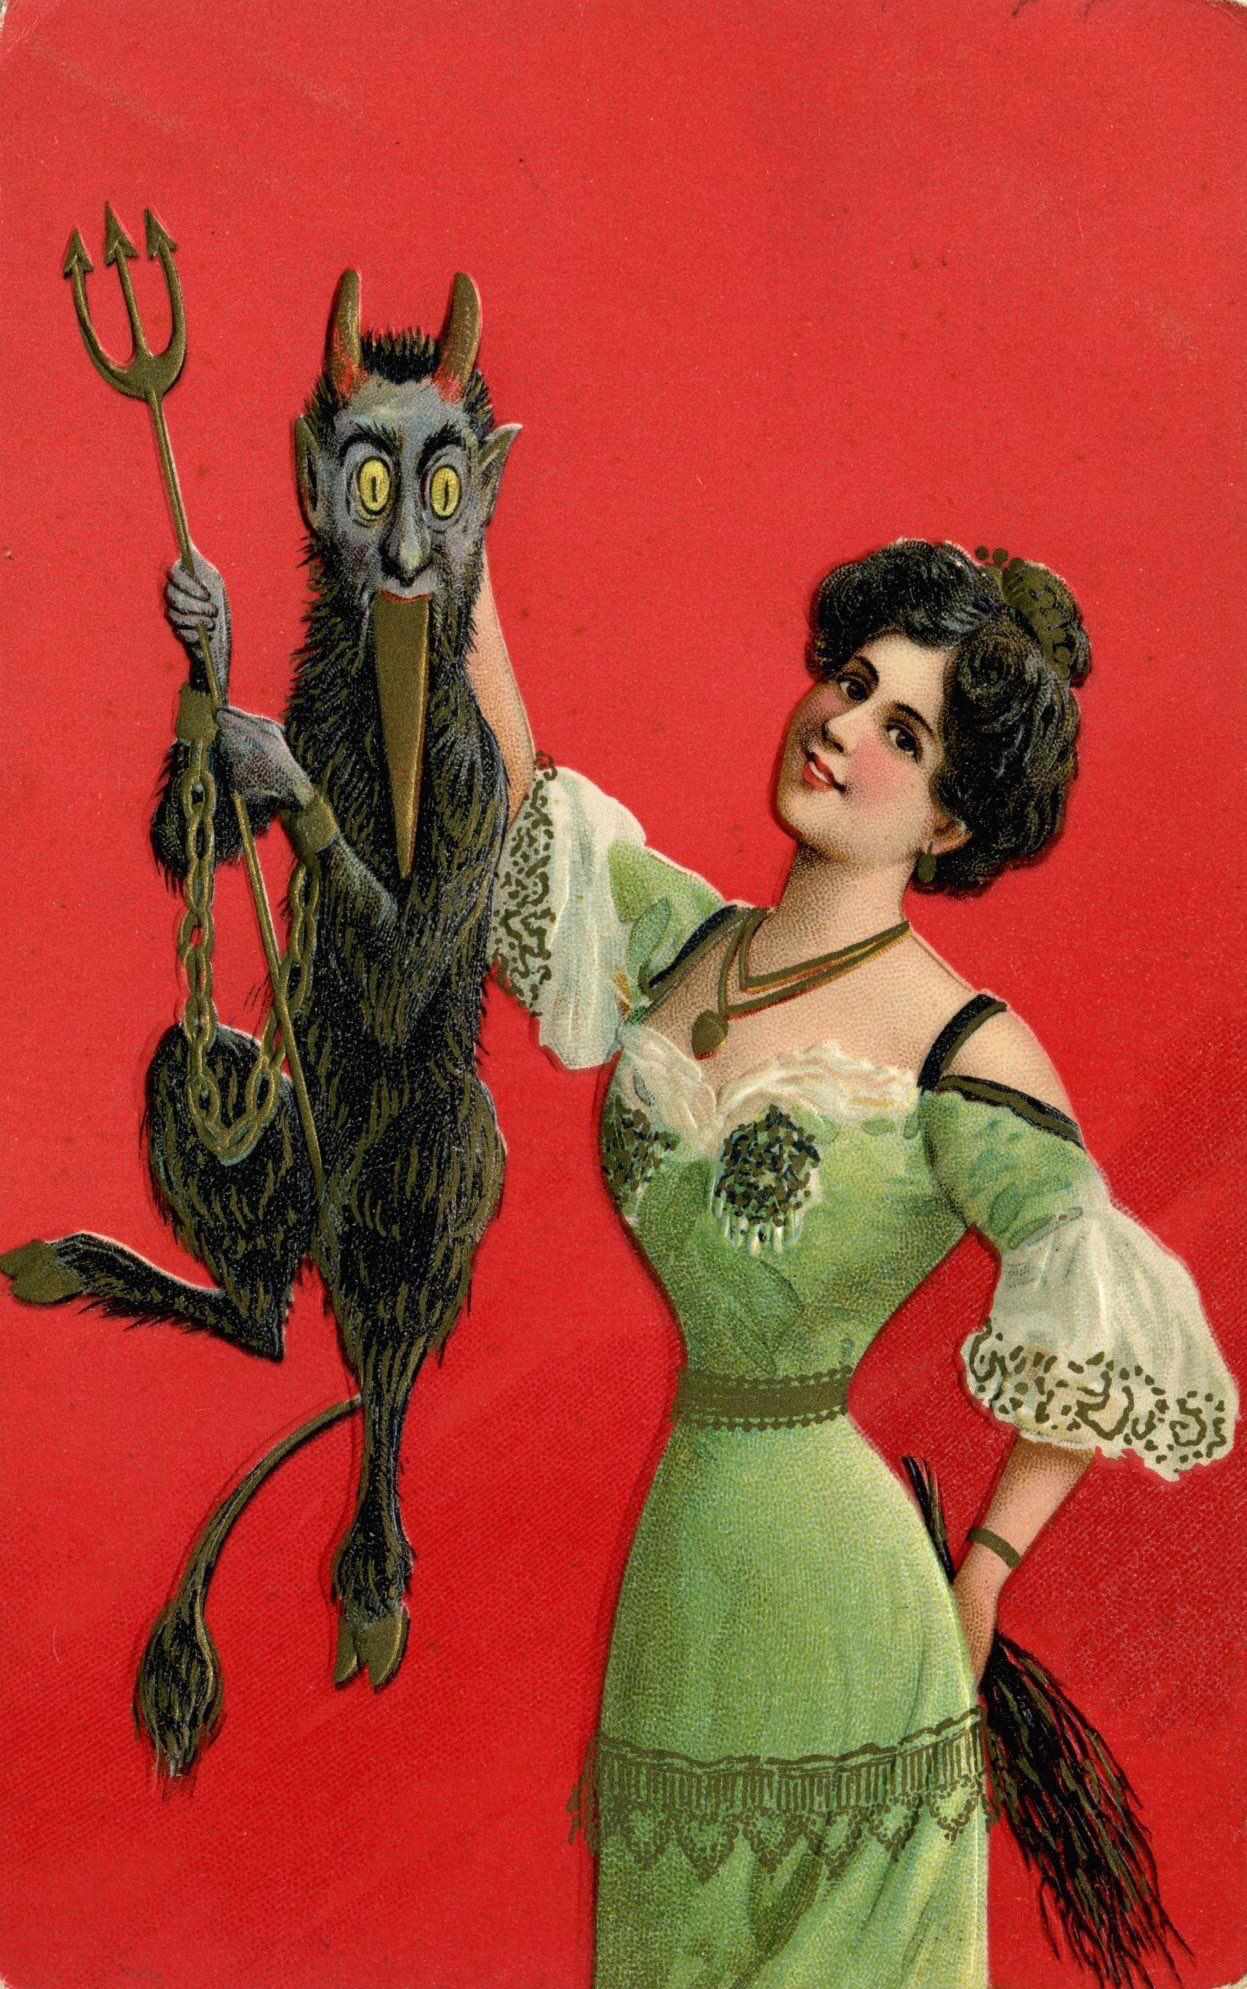 Vintage Krampus Postcards Scary Christmas Krampus Creepy Christmas